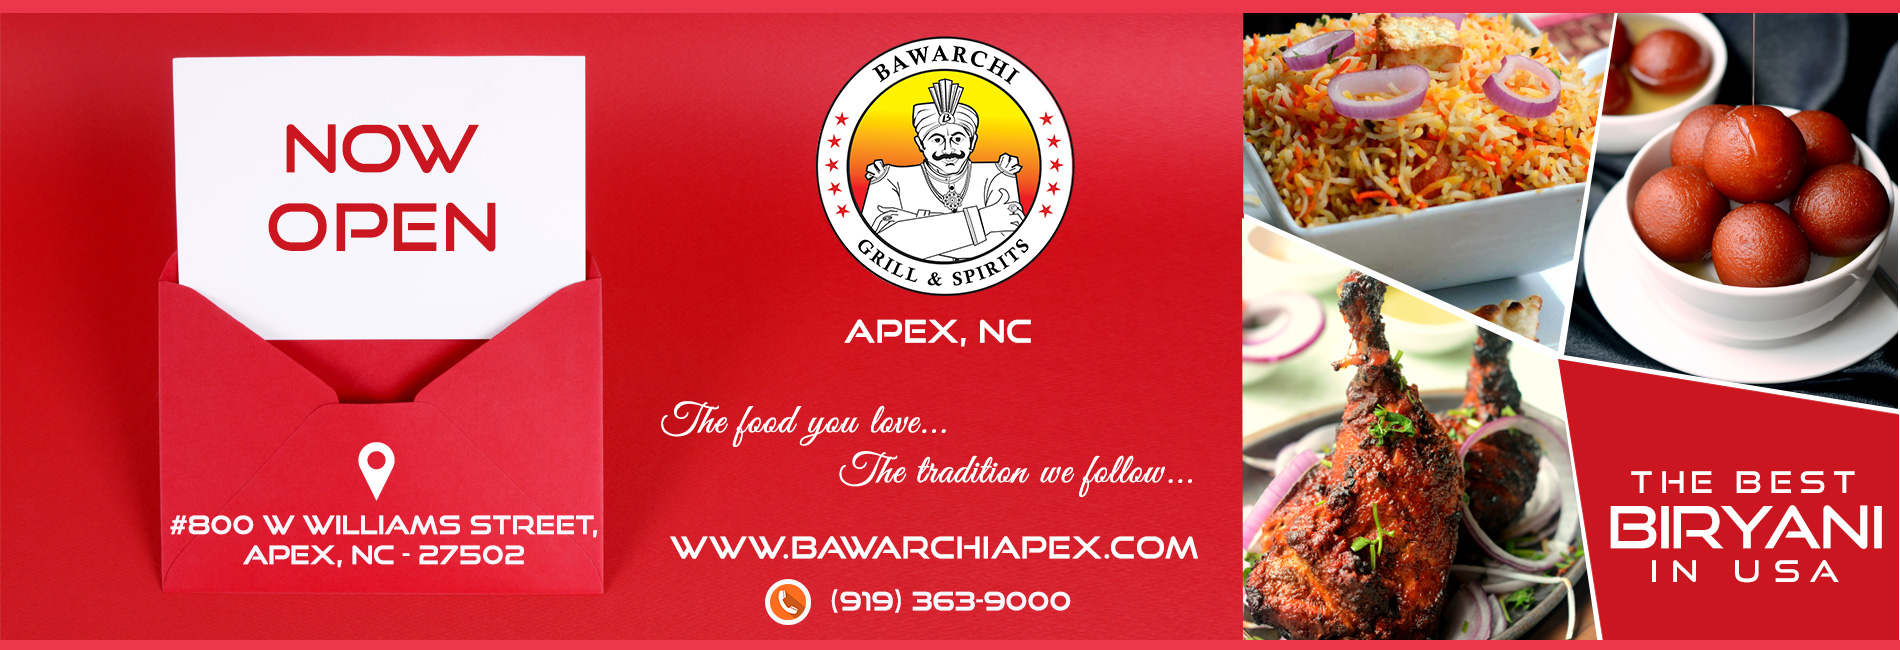 Bawarchi Opening soon location - Apex, NC